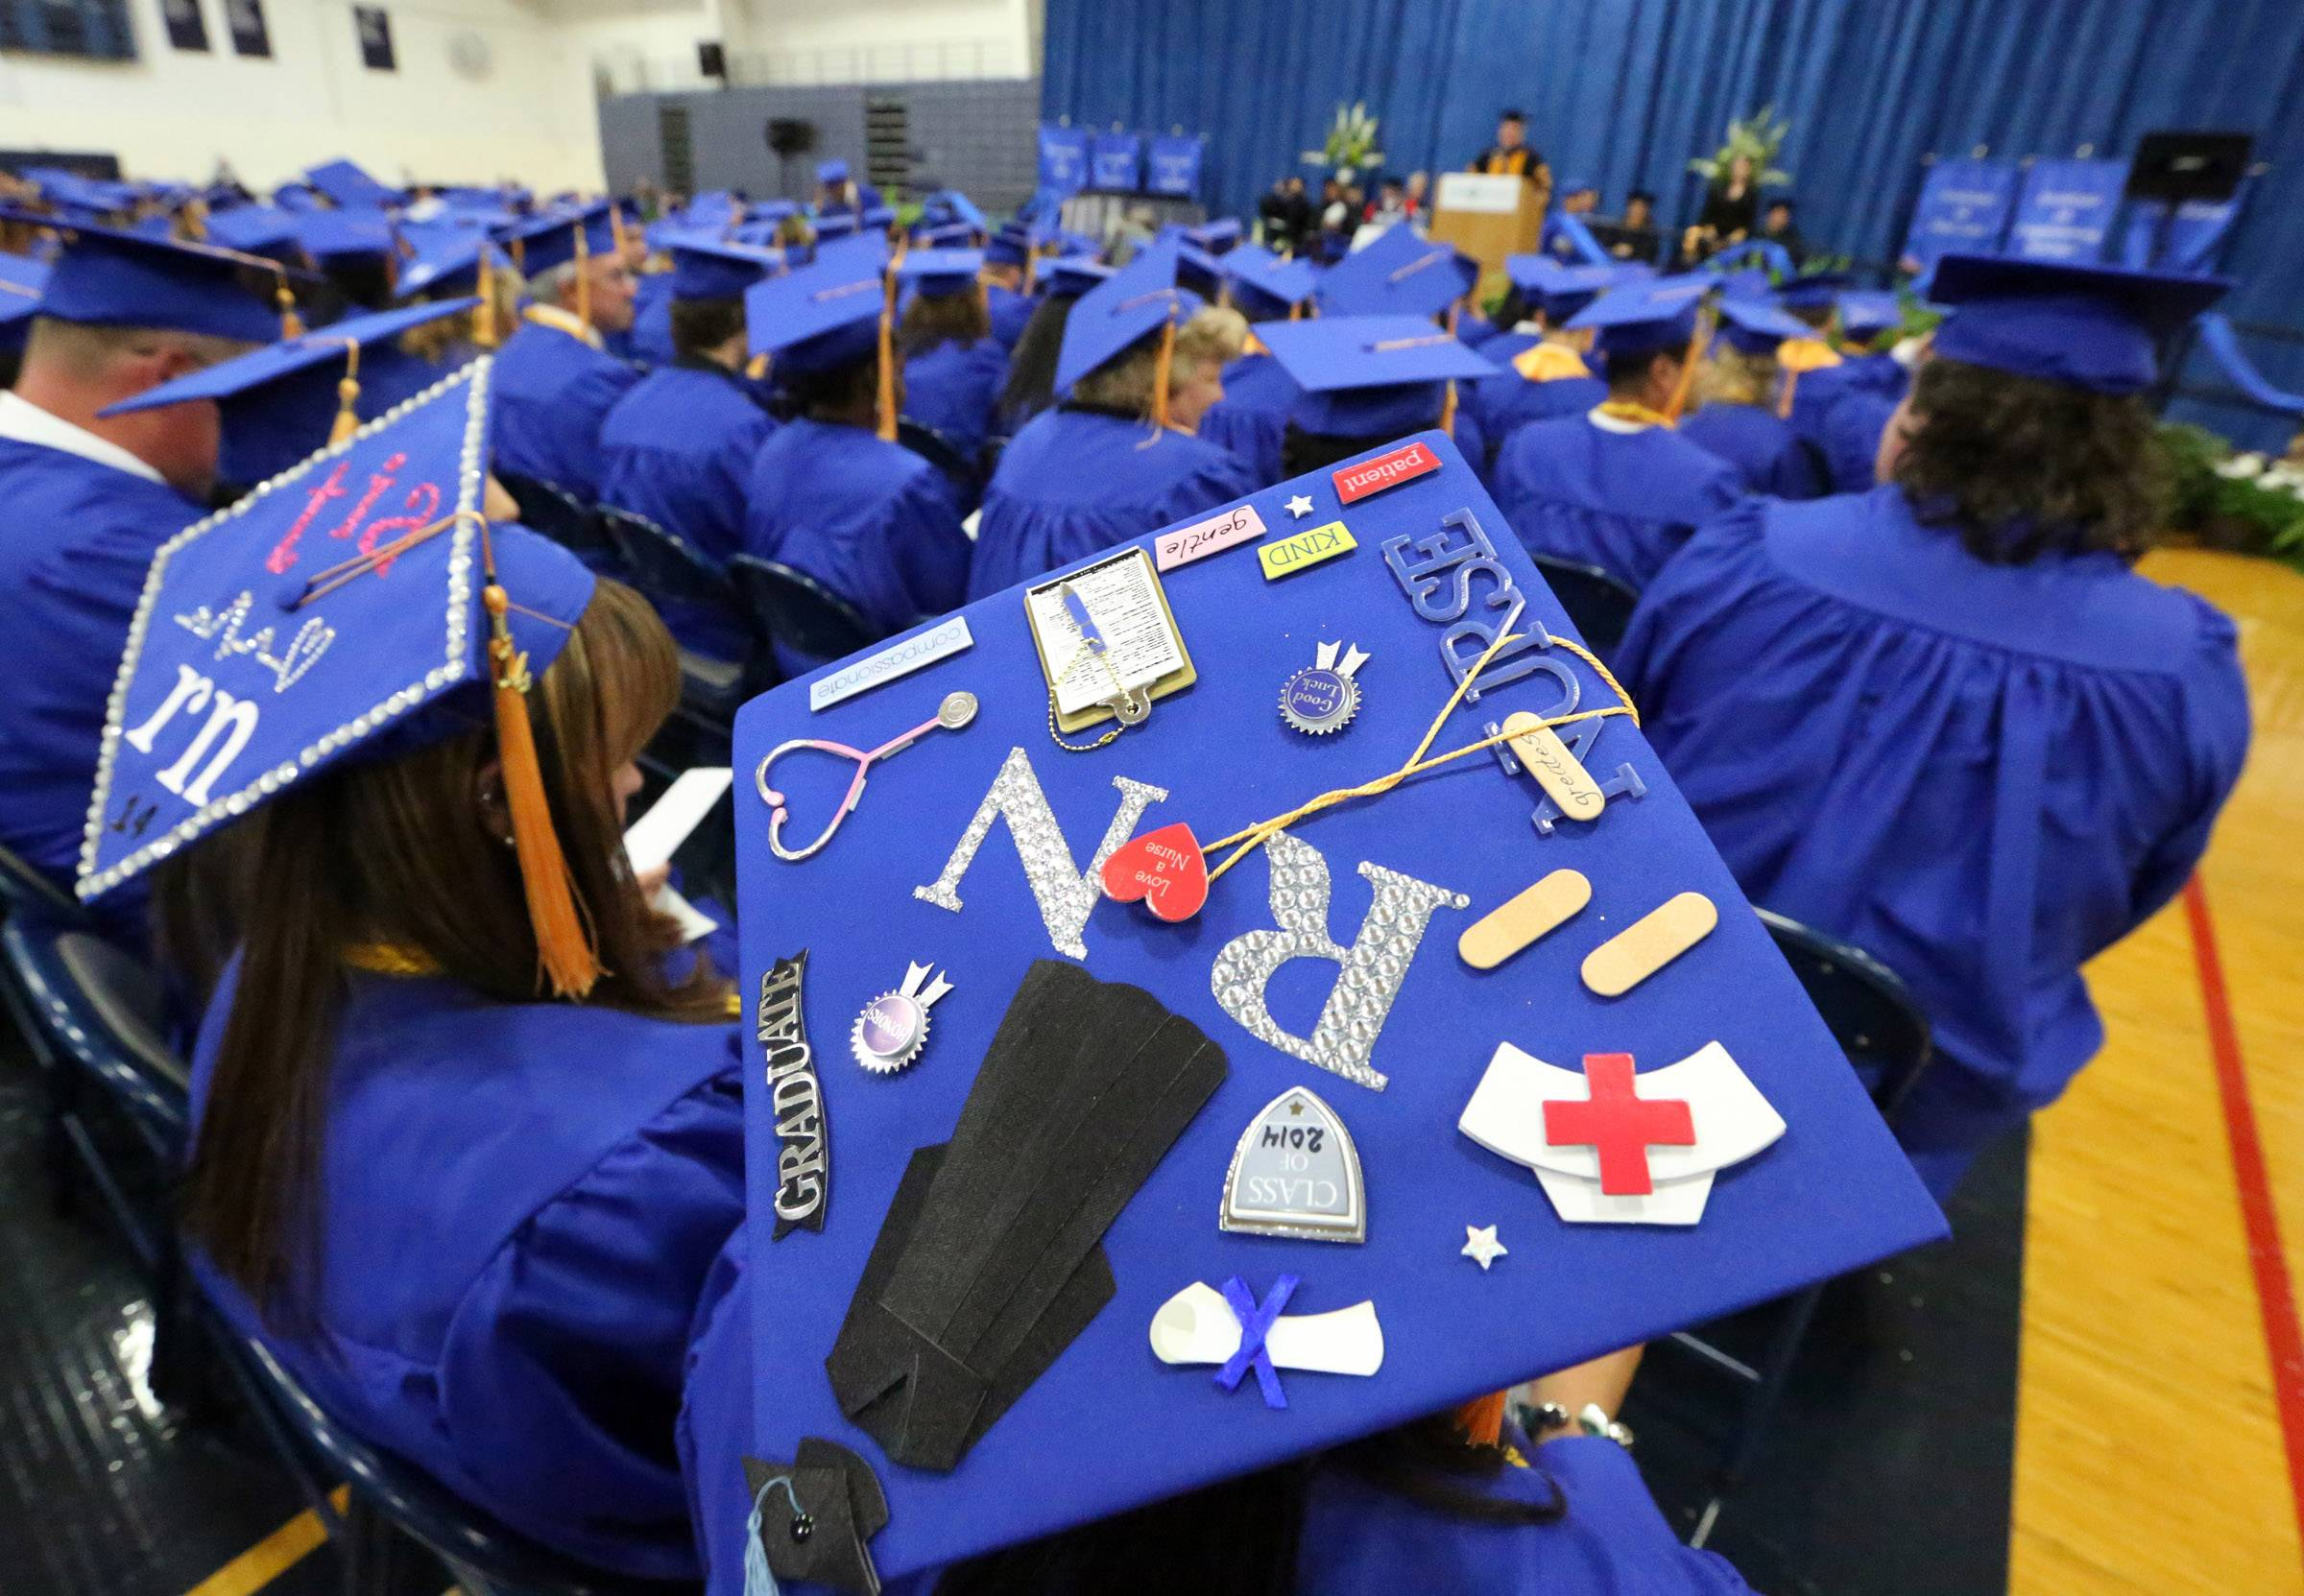 Tia Echterling of Antioch, left, and Lashuan Davis of Zion wear decorated caps during College of Lake County's 45th commencement ceremony on Saturday in Grayslake.